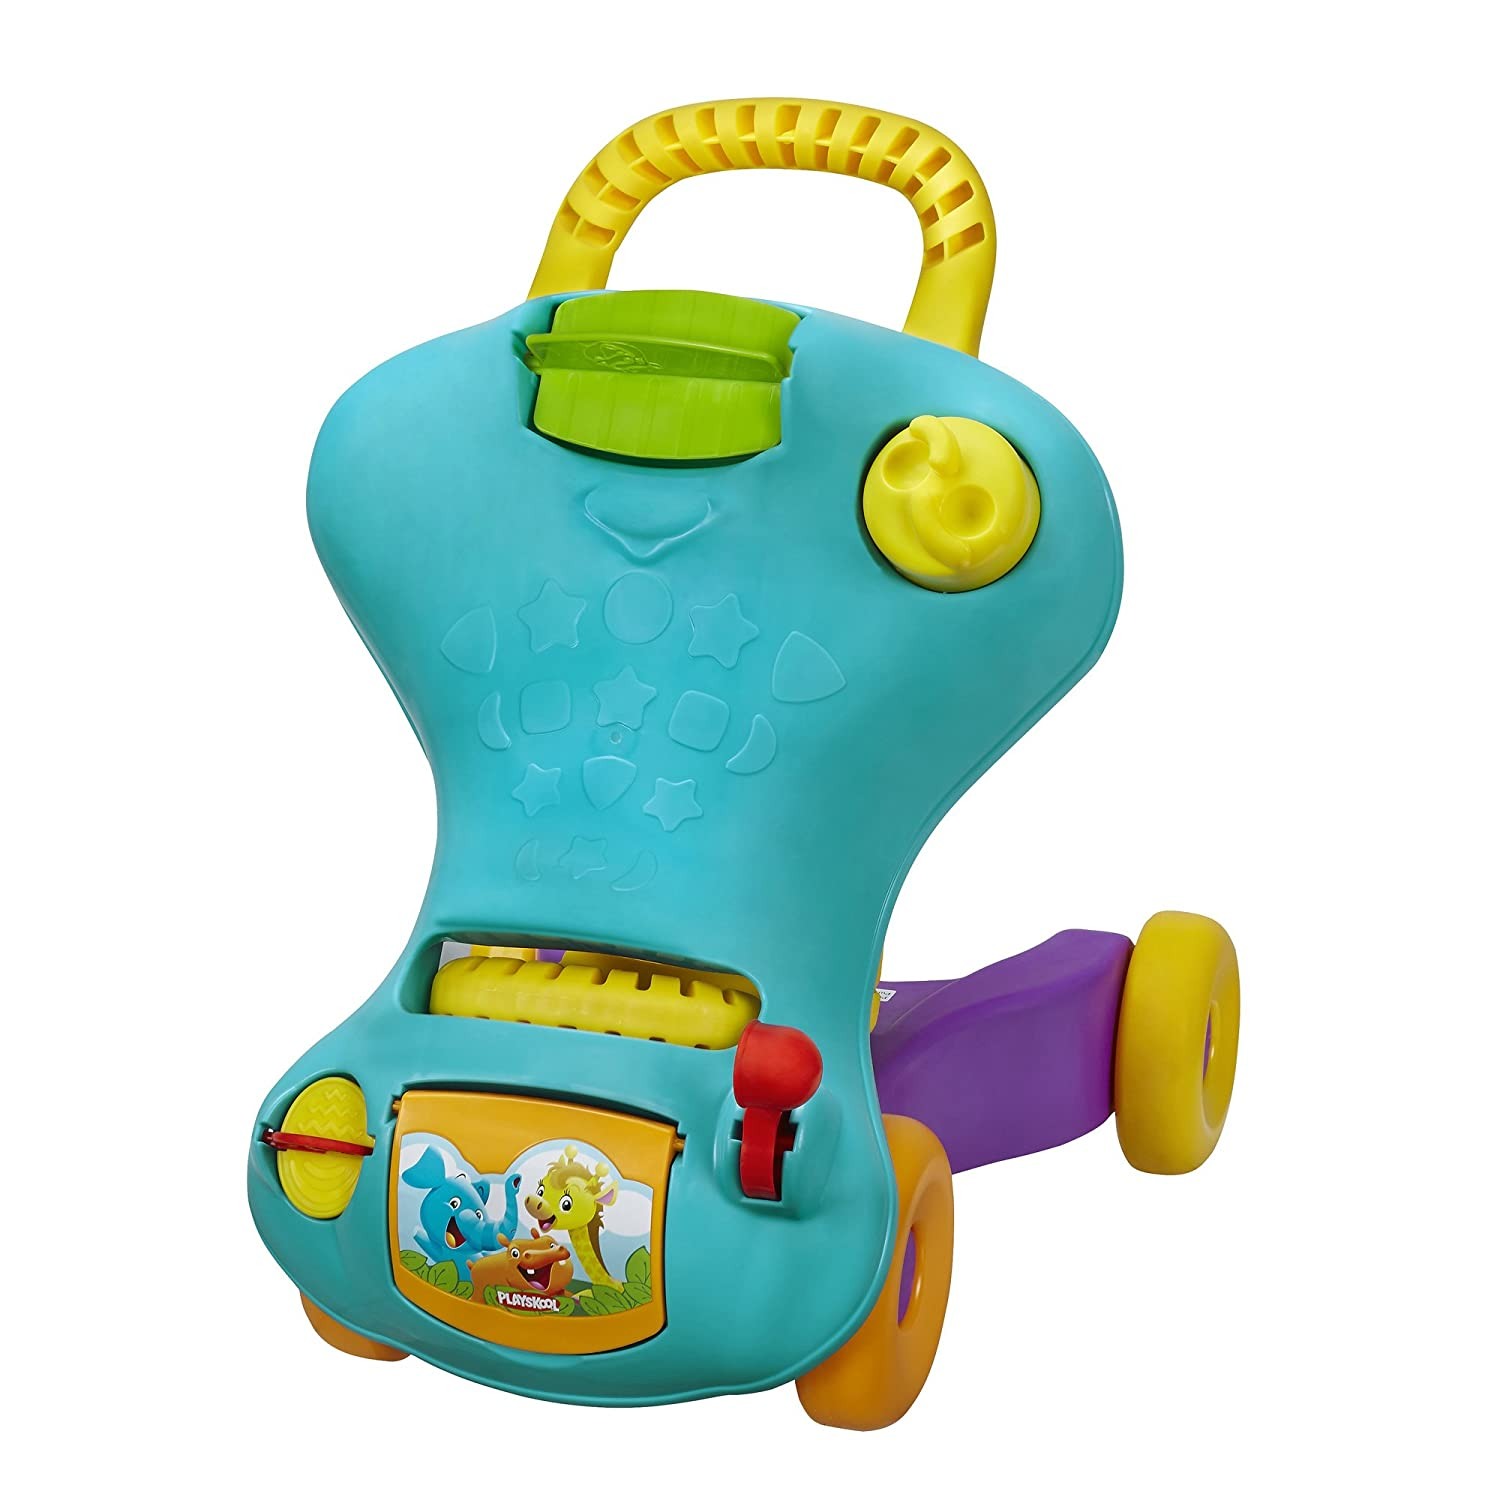 Playskool Step Start Walk 'n Ride